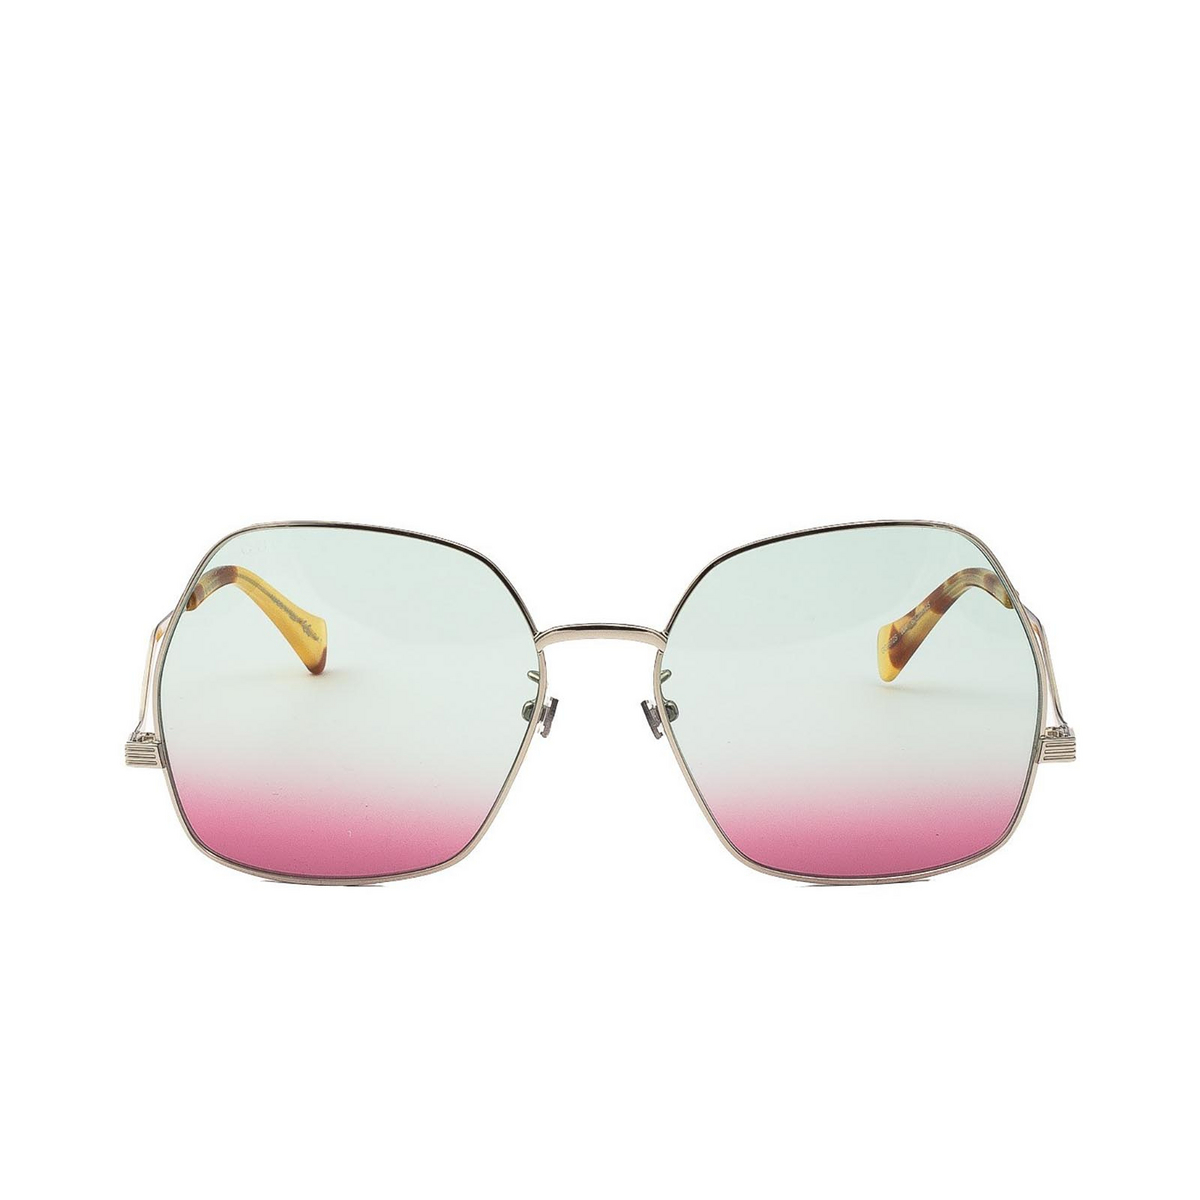 Gucci® Irregular Sunglasses: GG0972S color Silver 004 - front view.